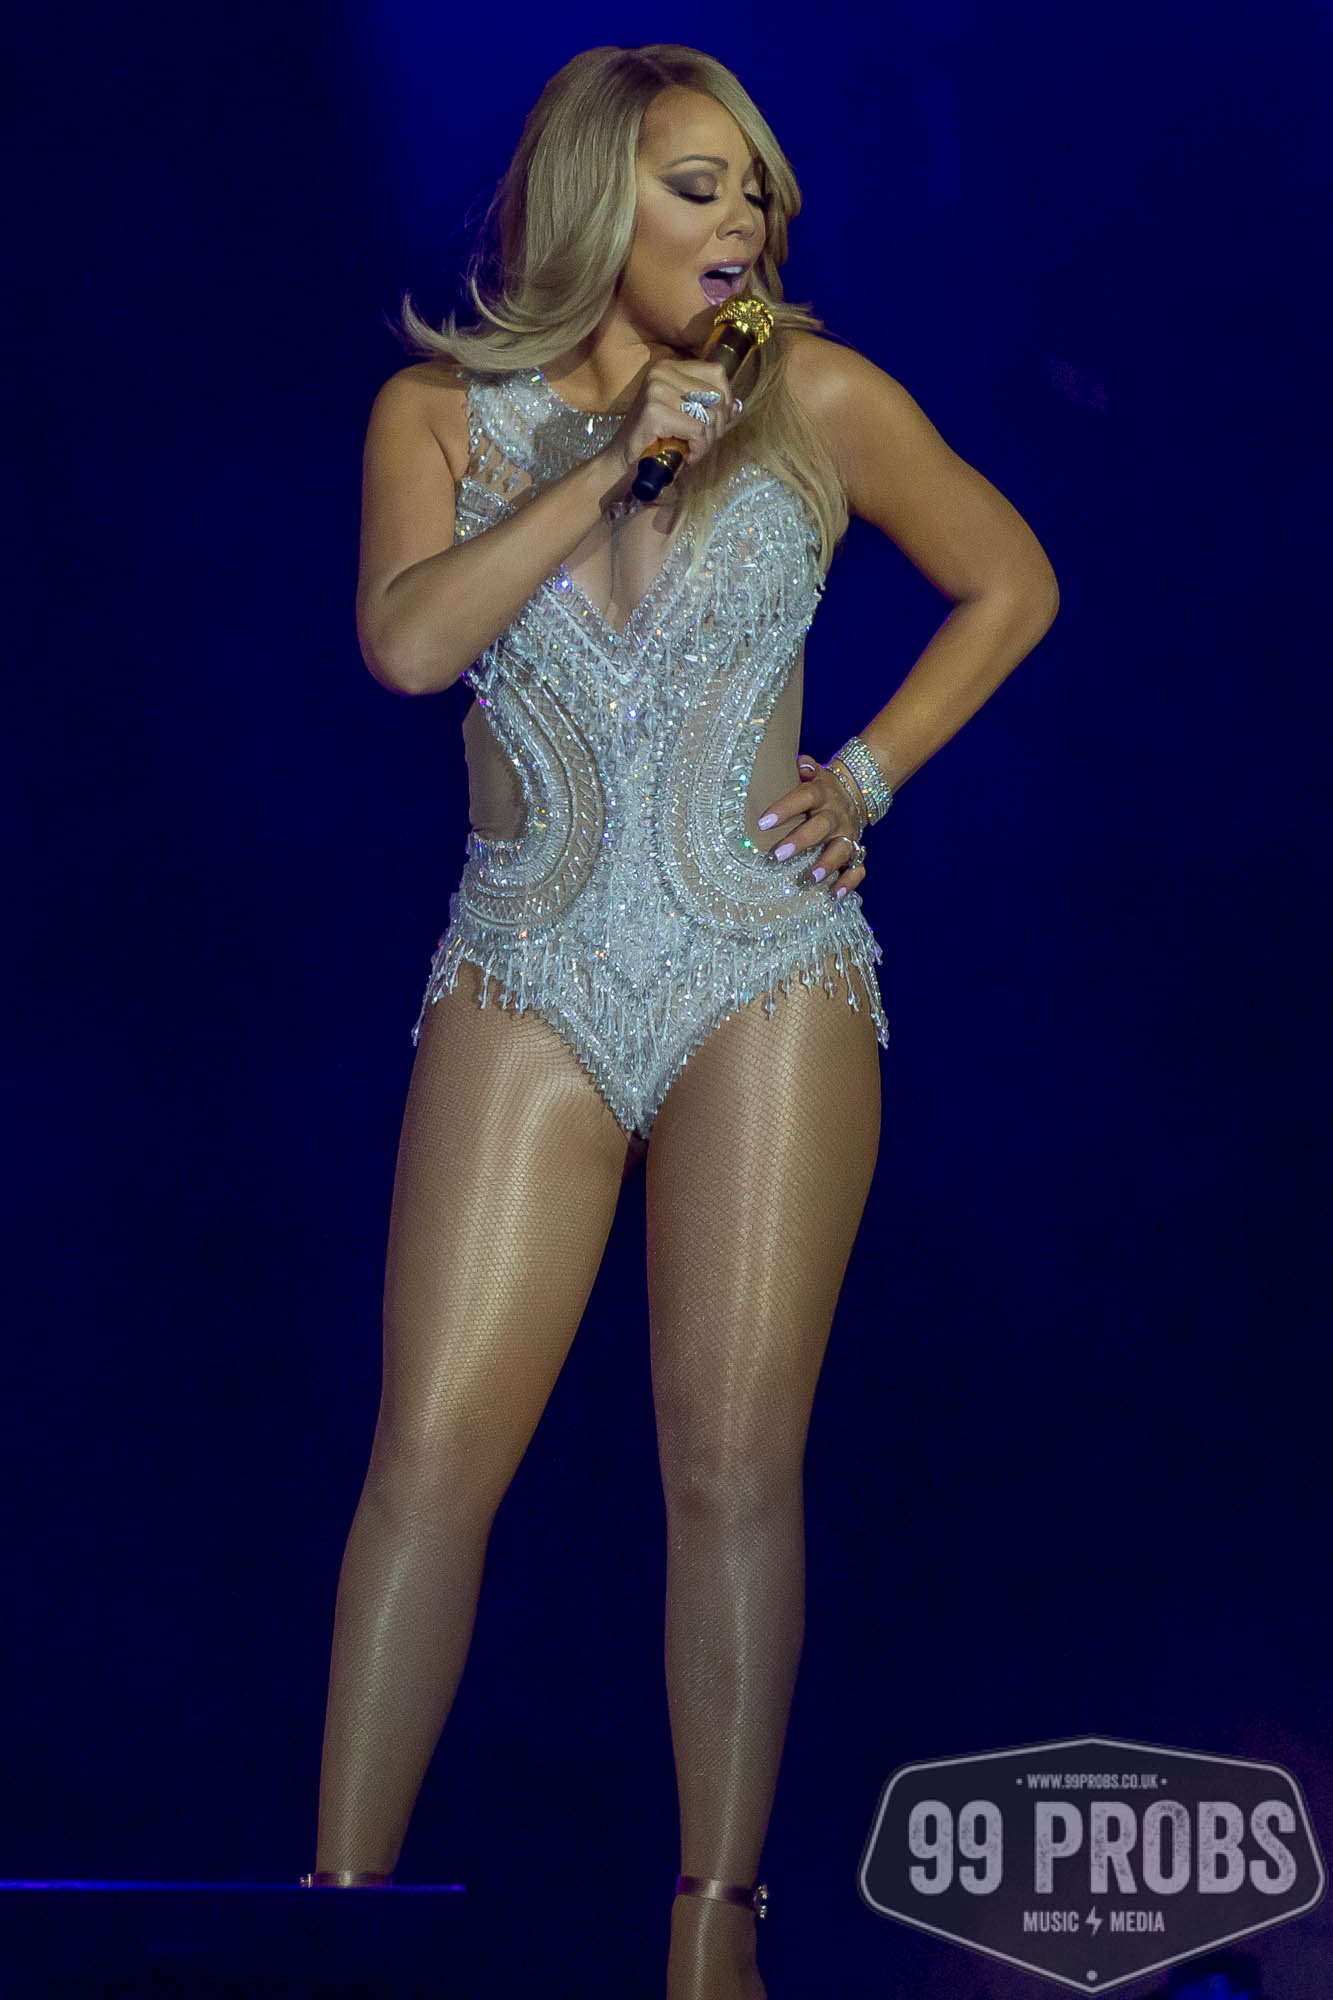 Mariah Carey performs live at the London O2 Arena - 99PROBS Music